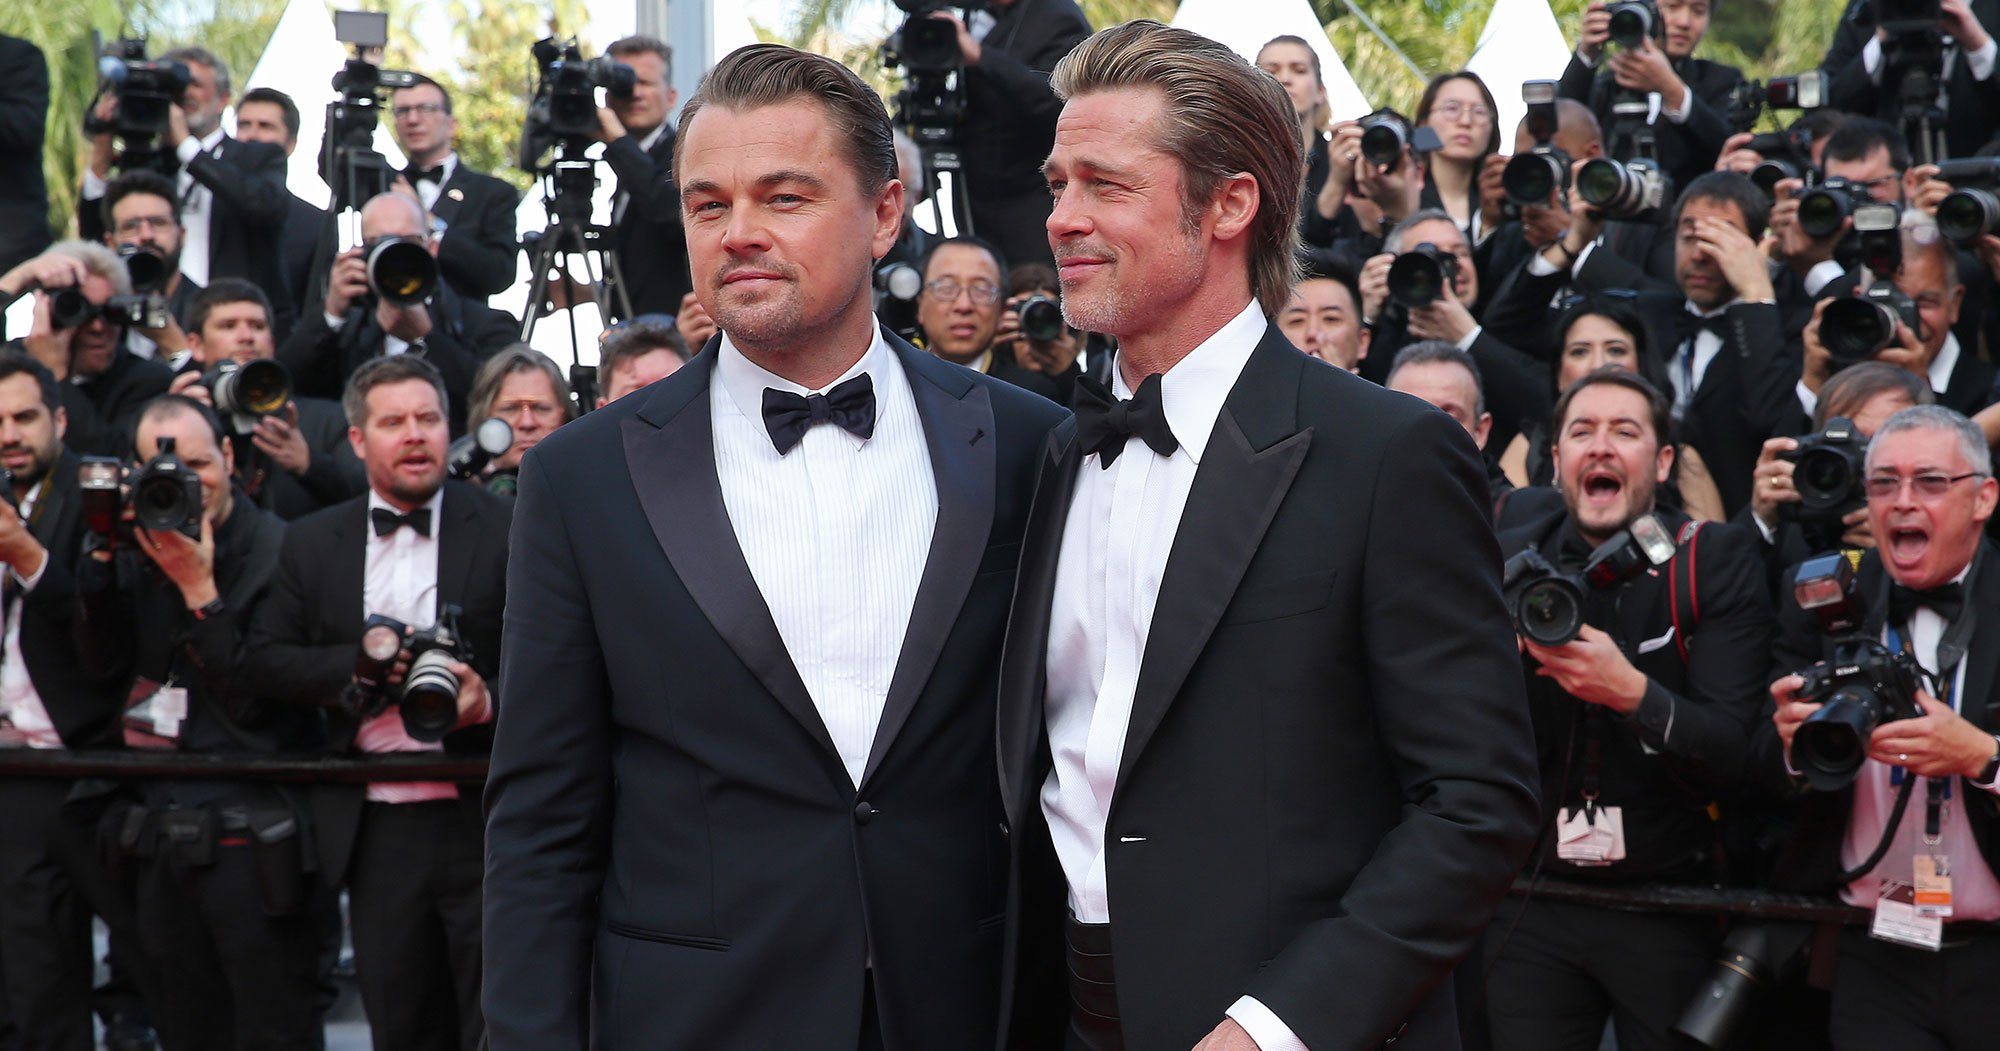 Cannes Film Festival 2019: See the Hottest, Most Stylish Guys on the Red Carpet